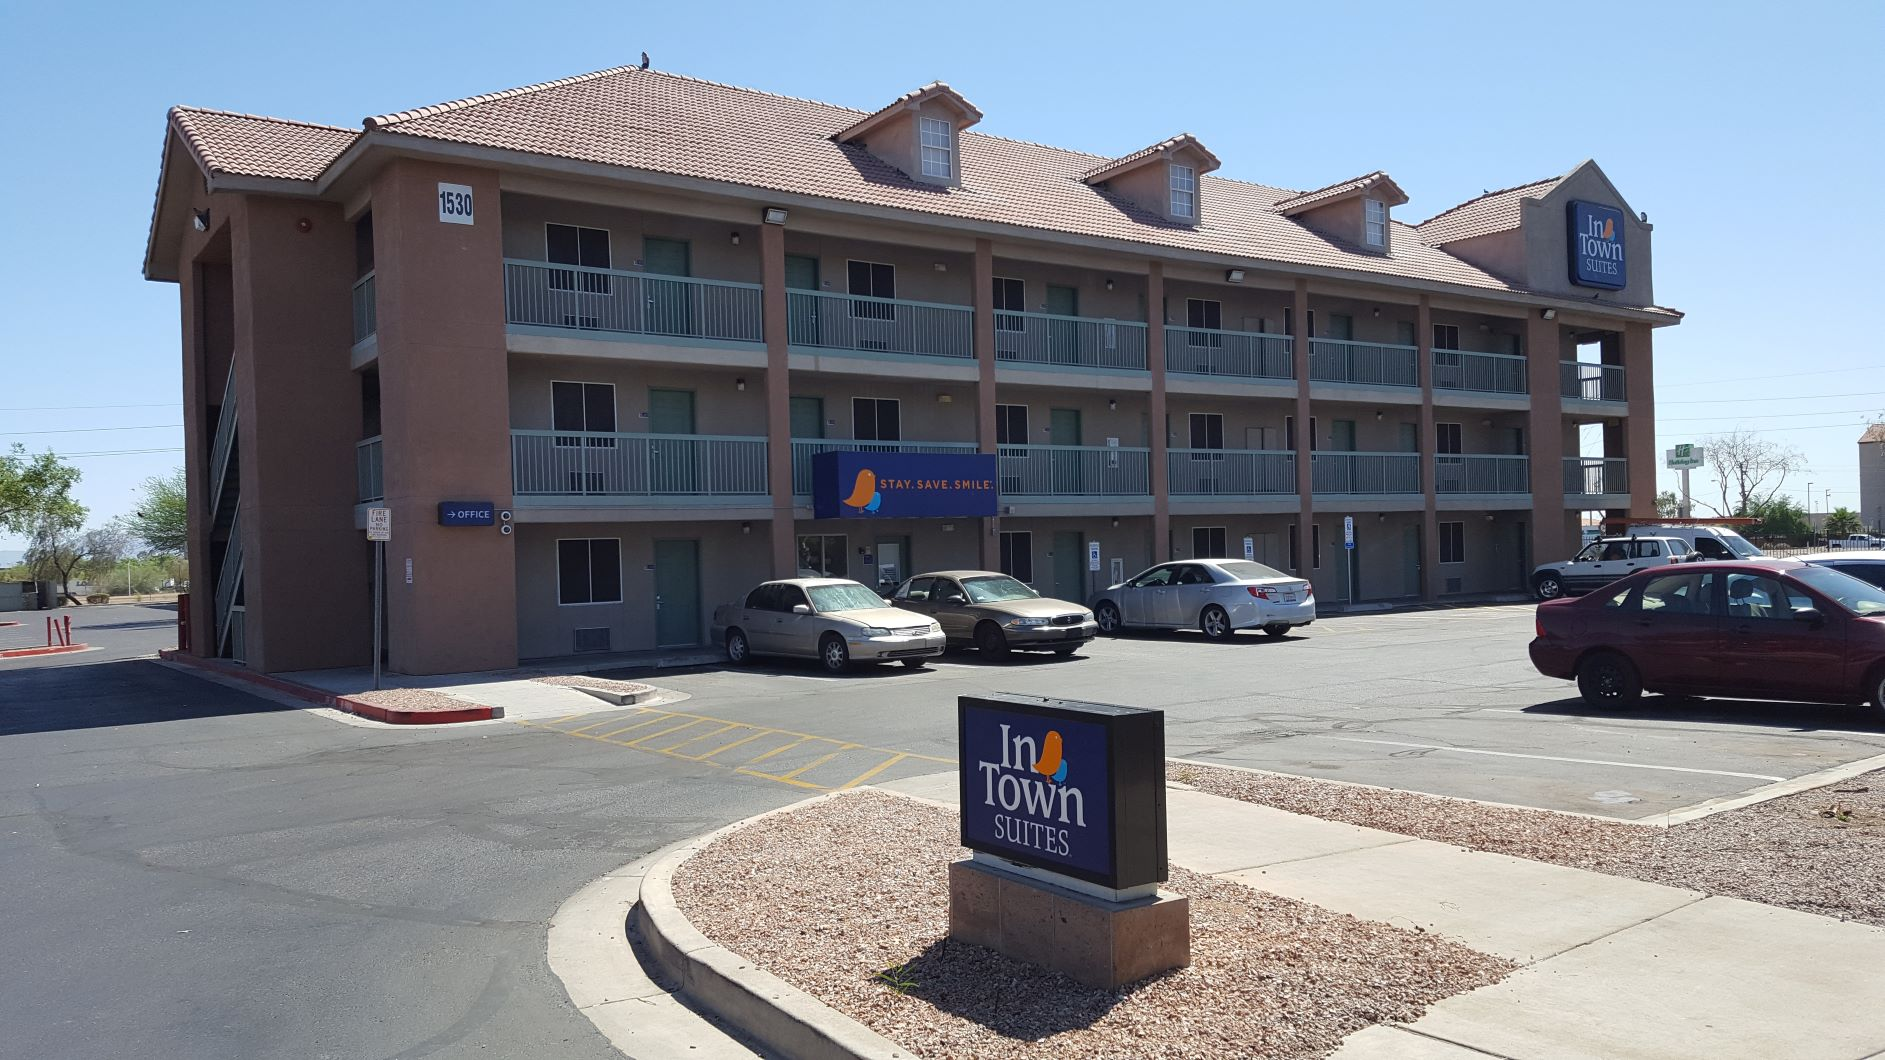 InTown Suites Extended Stay Phoenix AZ - West